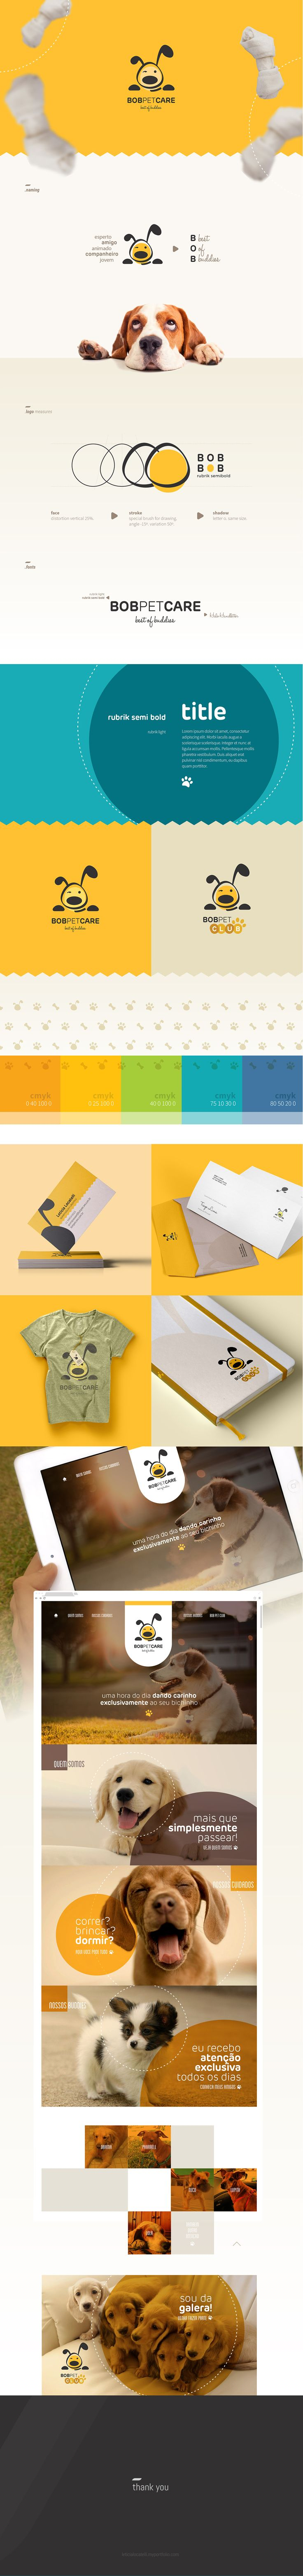 identidade visual Bob Pet Care on Behance